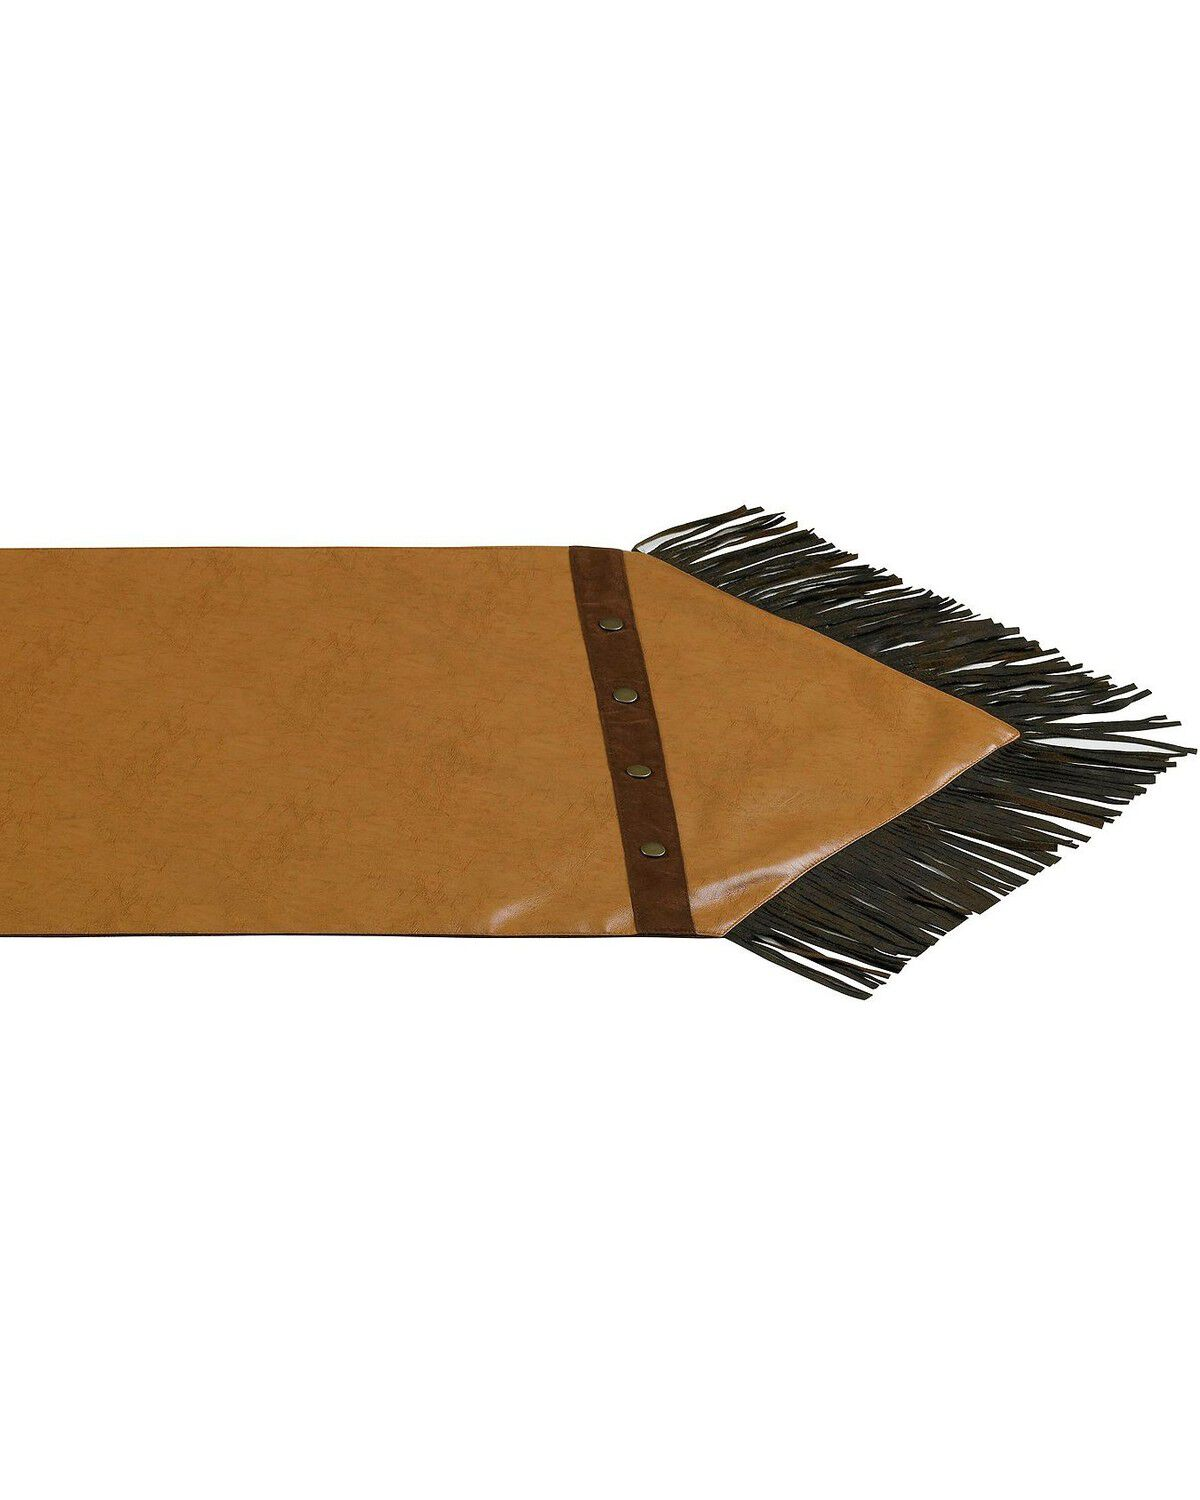 Delicieux Zoomed Image HiEnd Accents Tan Faux Leather Table Runner, Tan, Hi Res